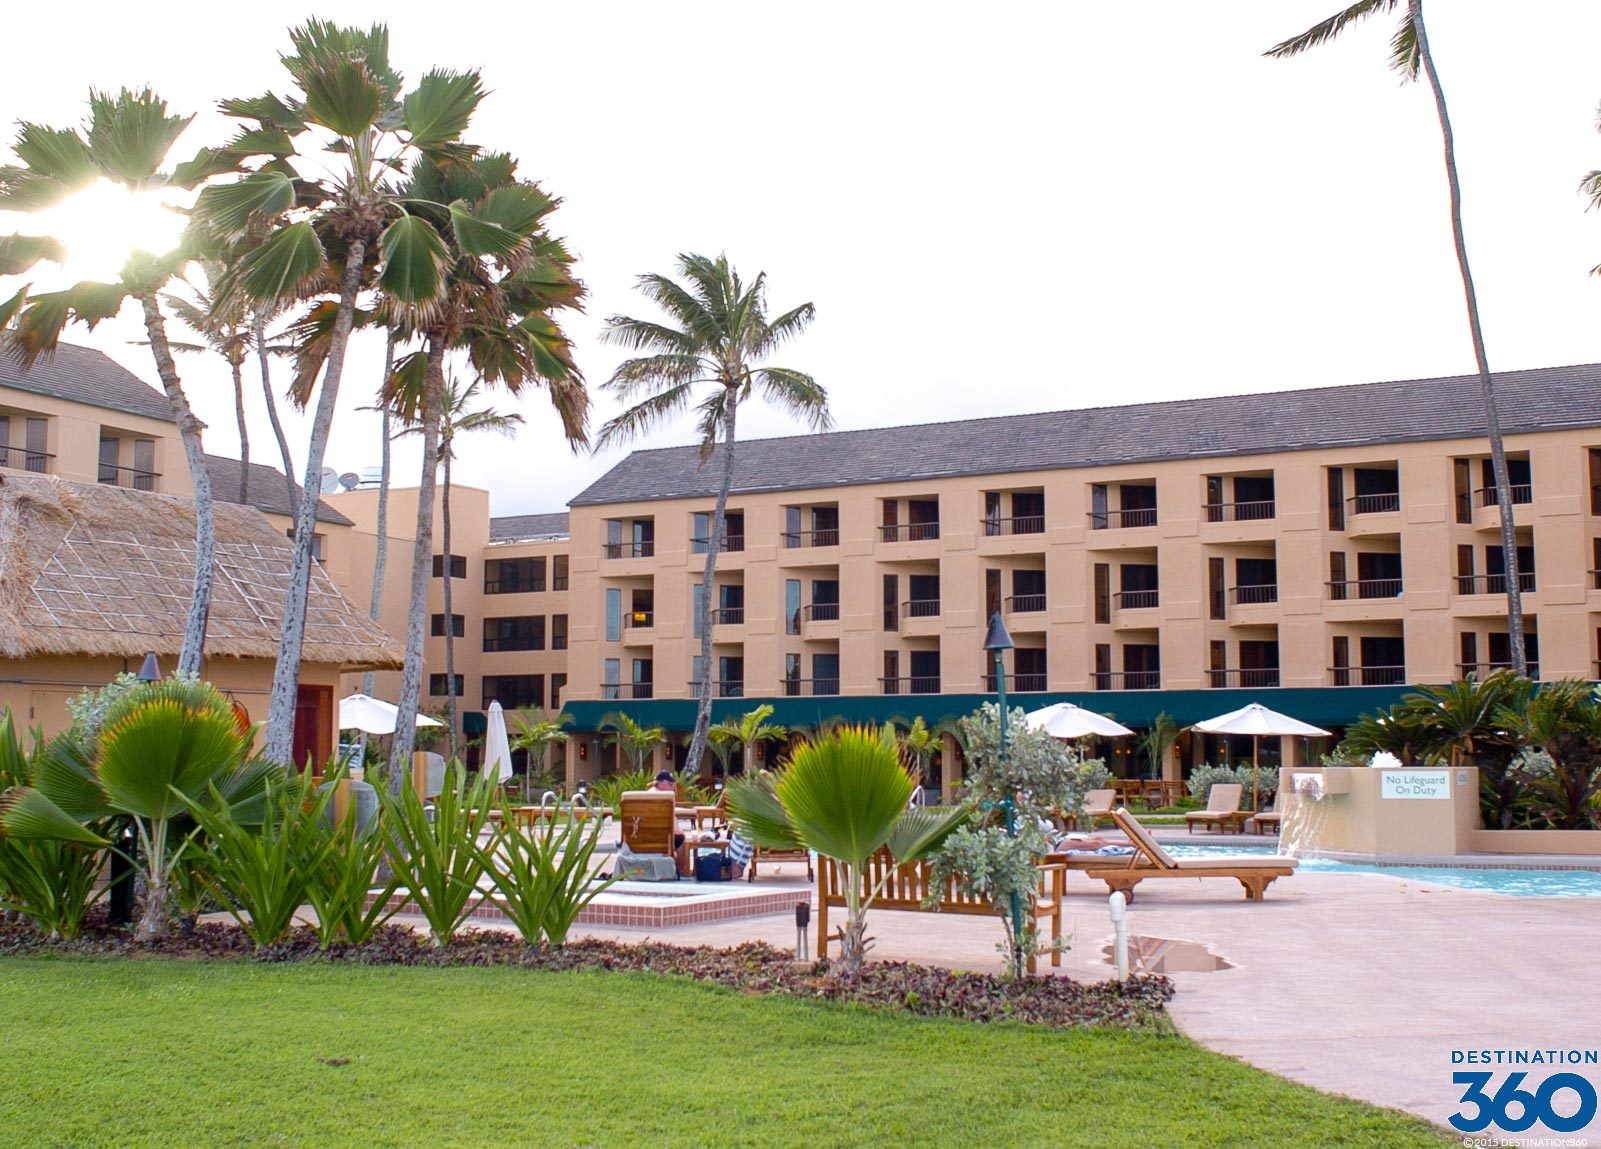 Kauai Luxury Hotels